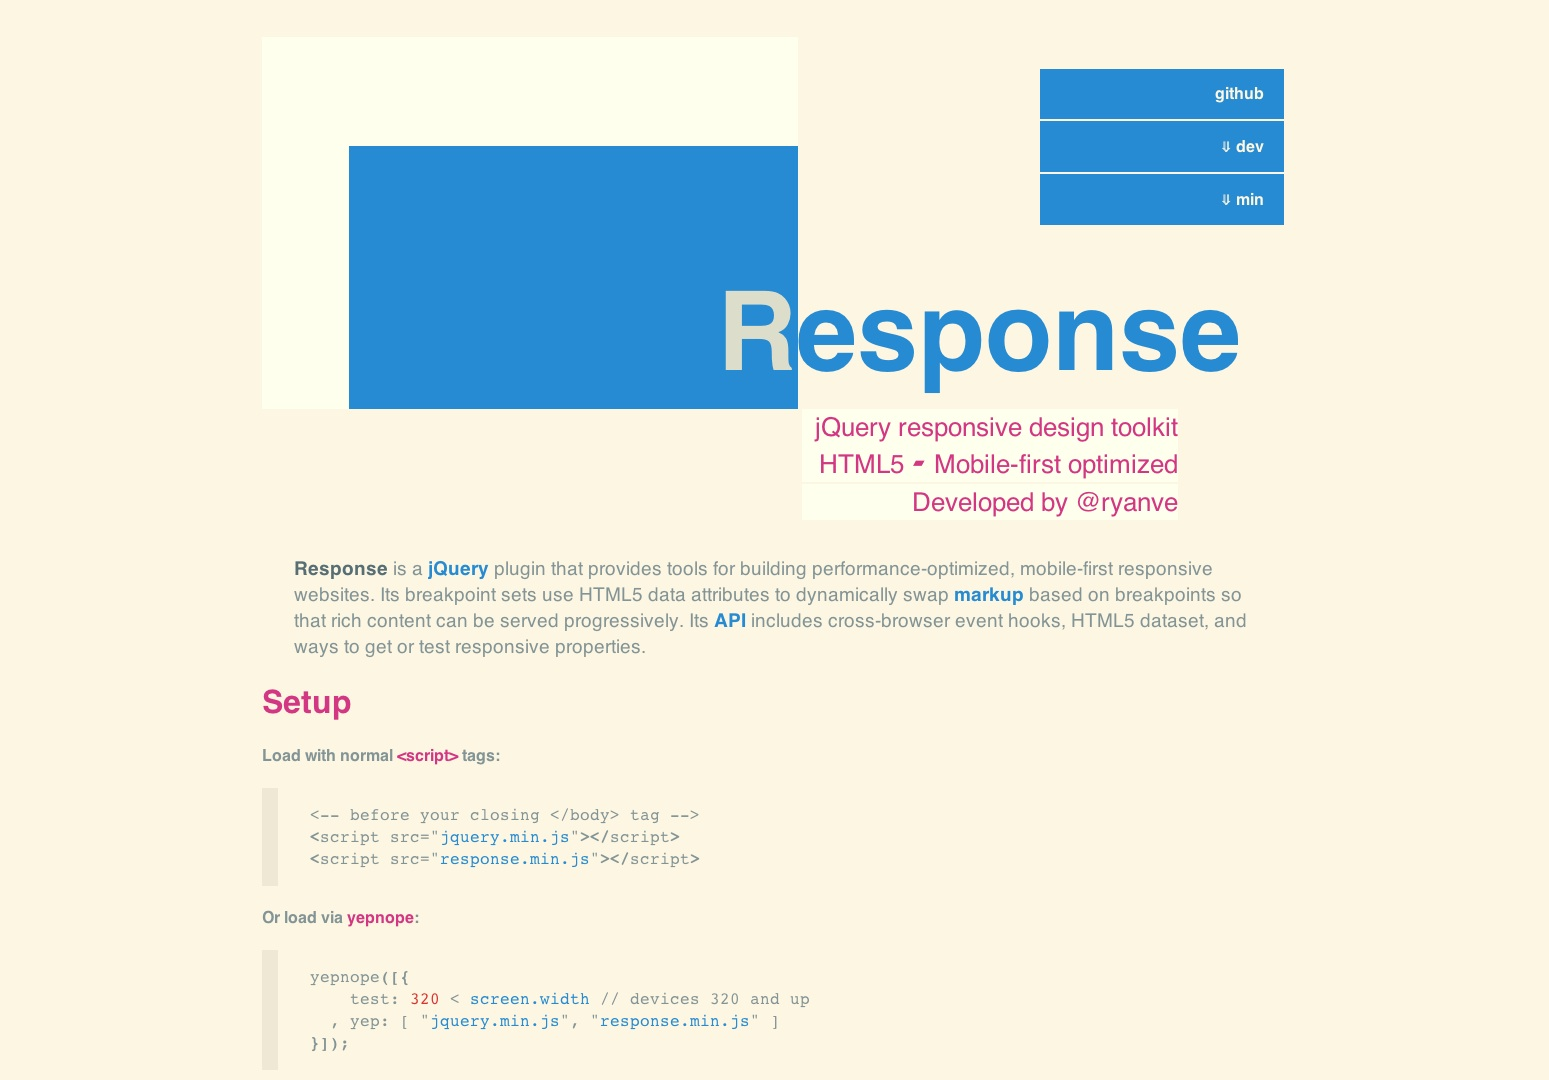 responsive web design essay Most web design trends are just that but in an increasingly mobile world, with an increasingly diverse number of mobile devices, the principles of responsive web design aren't going to go.